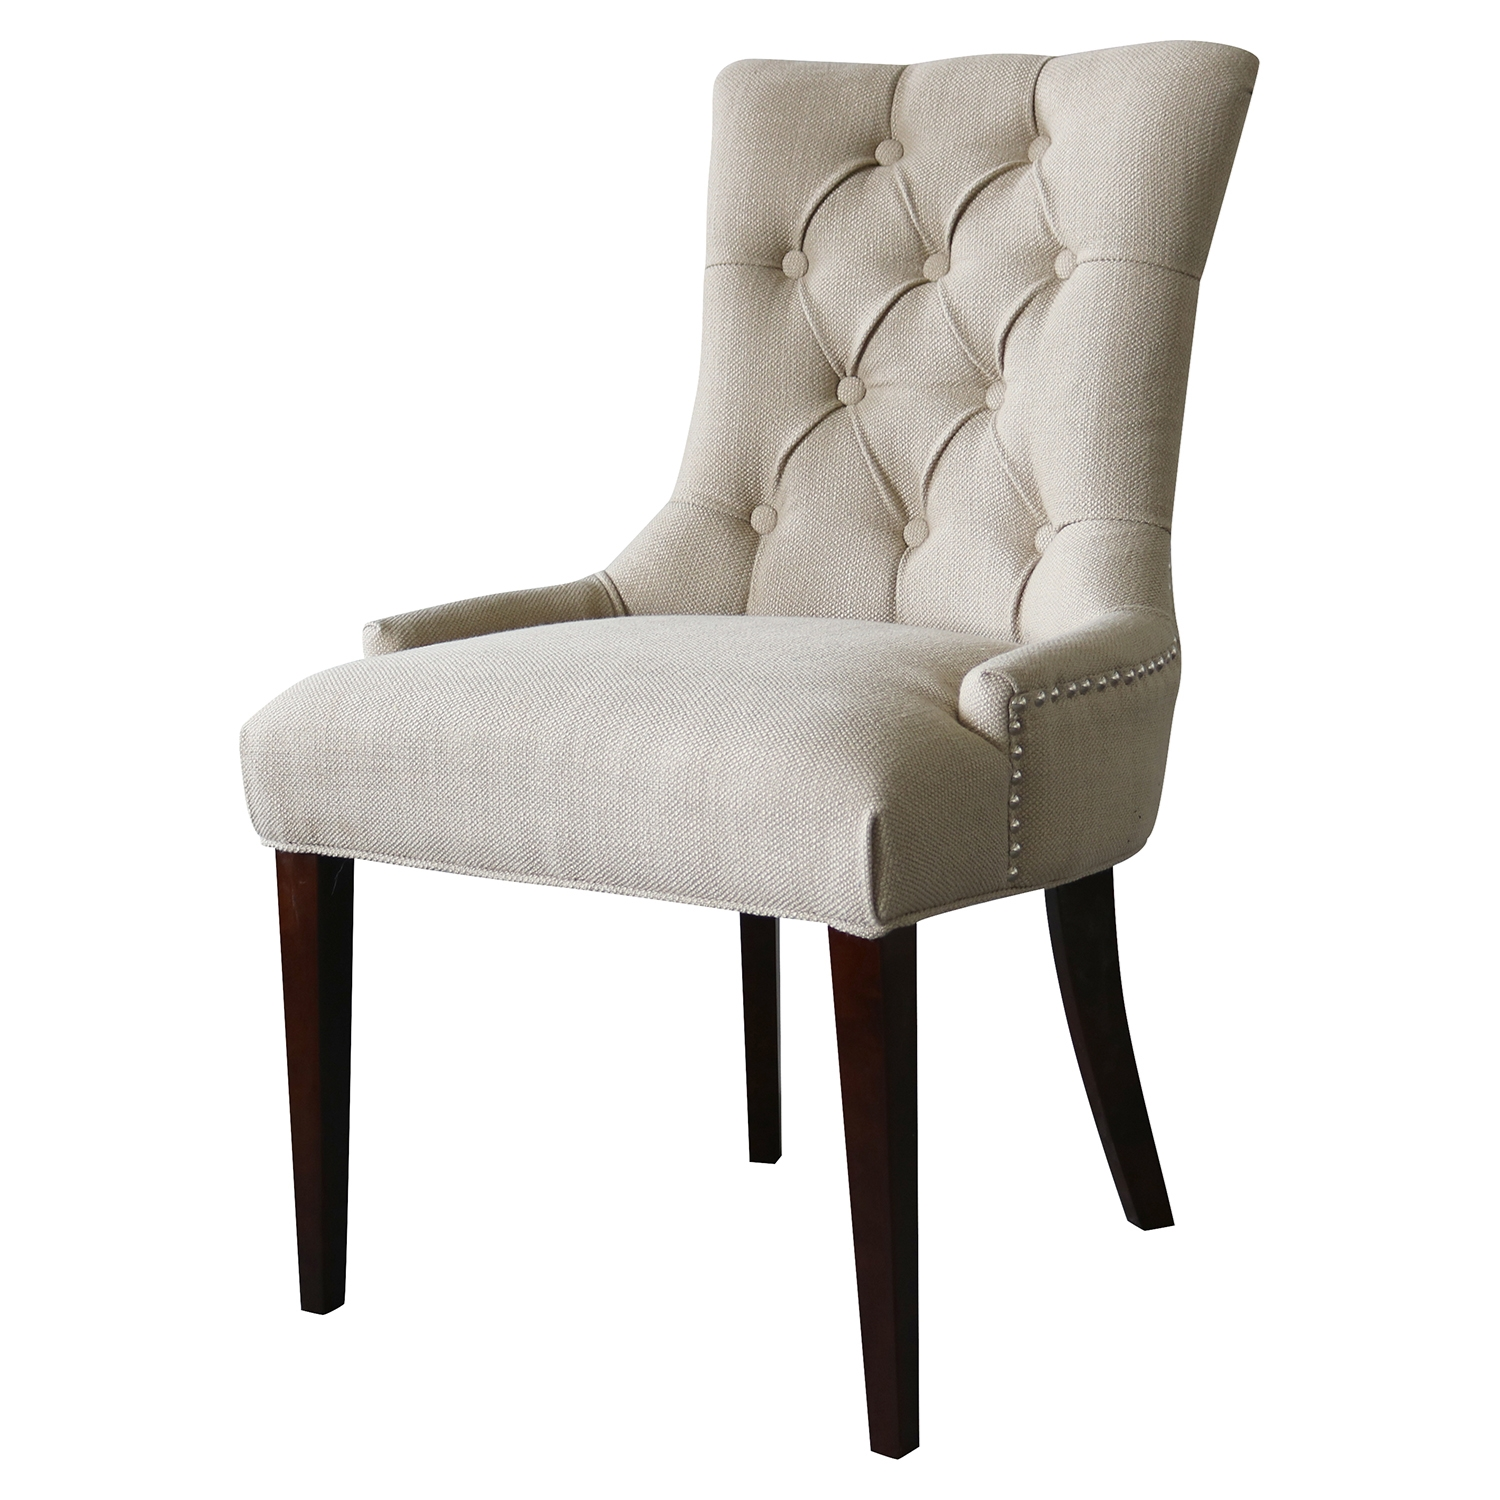 Madelyn Chair - Beige, Button Tufted